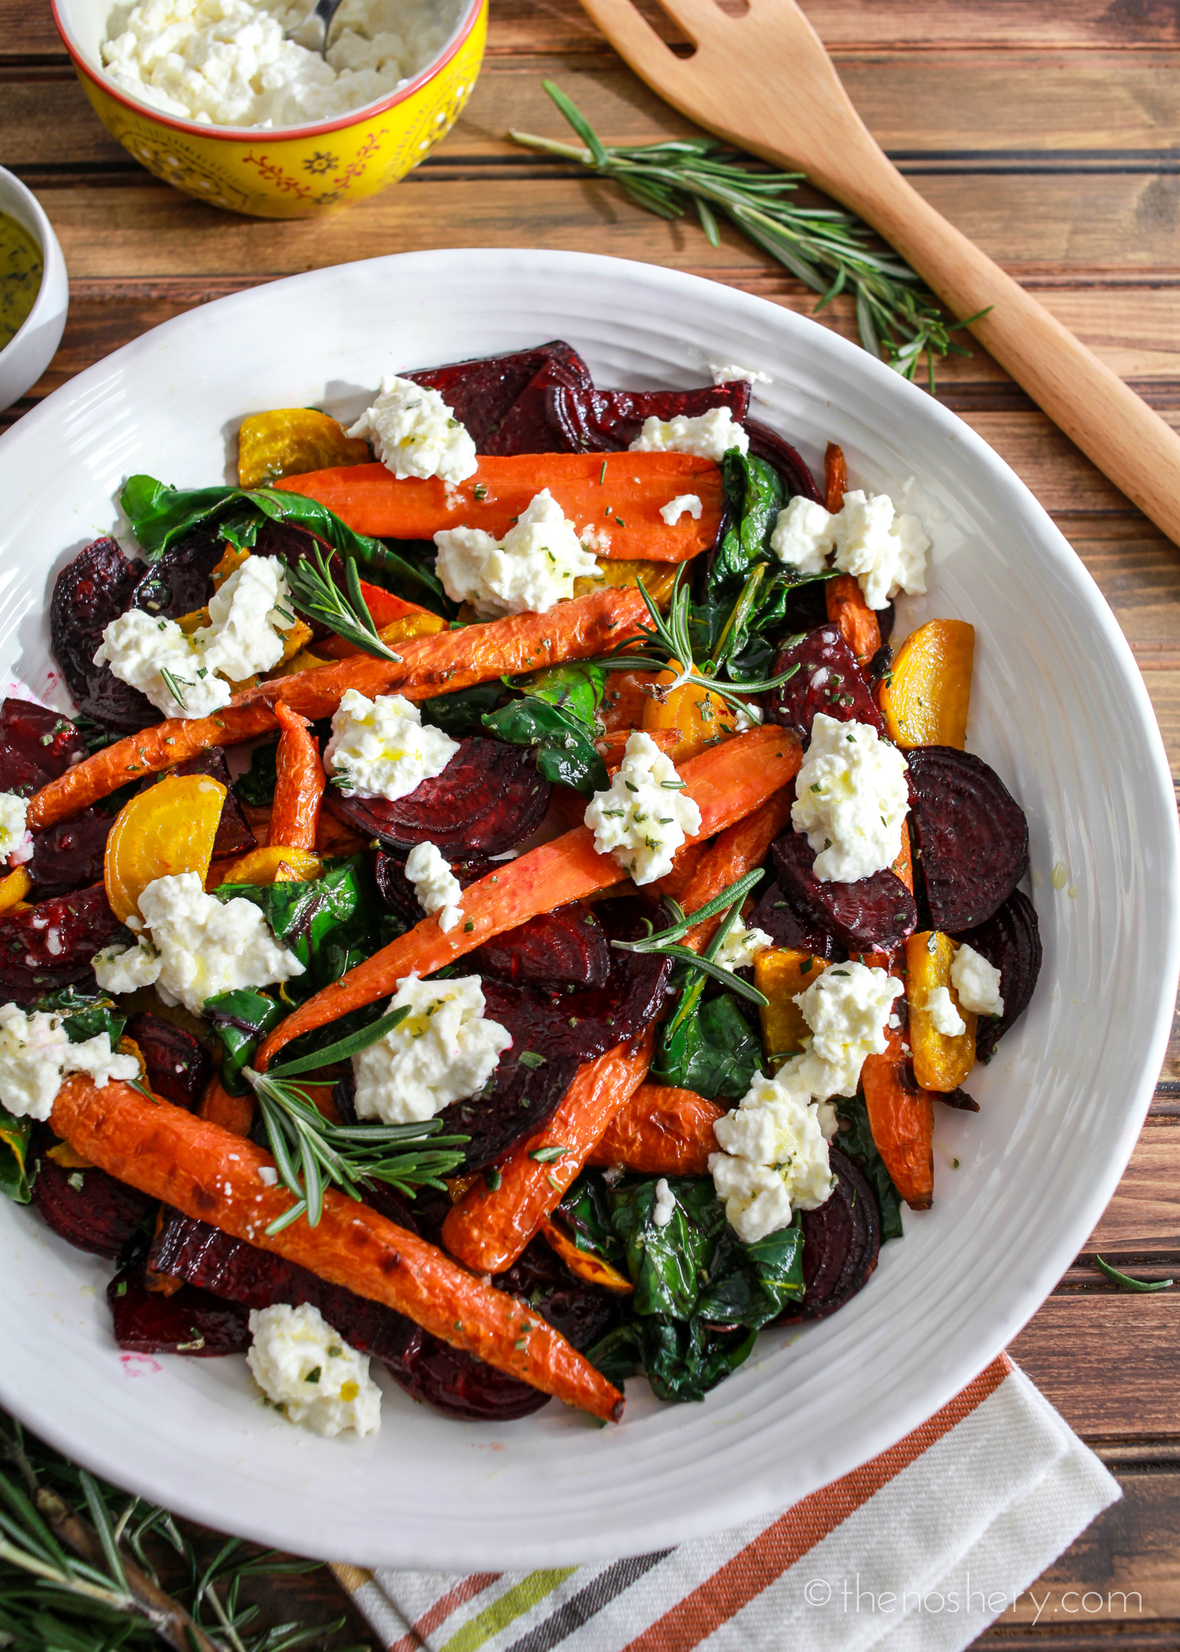 Roasted Beet and Carrot Salad 43